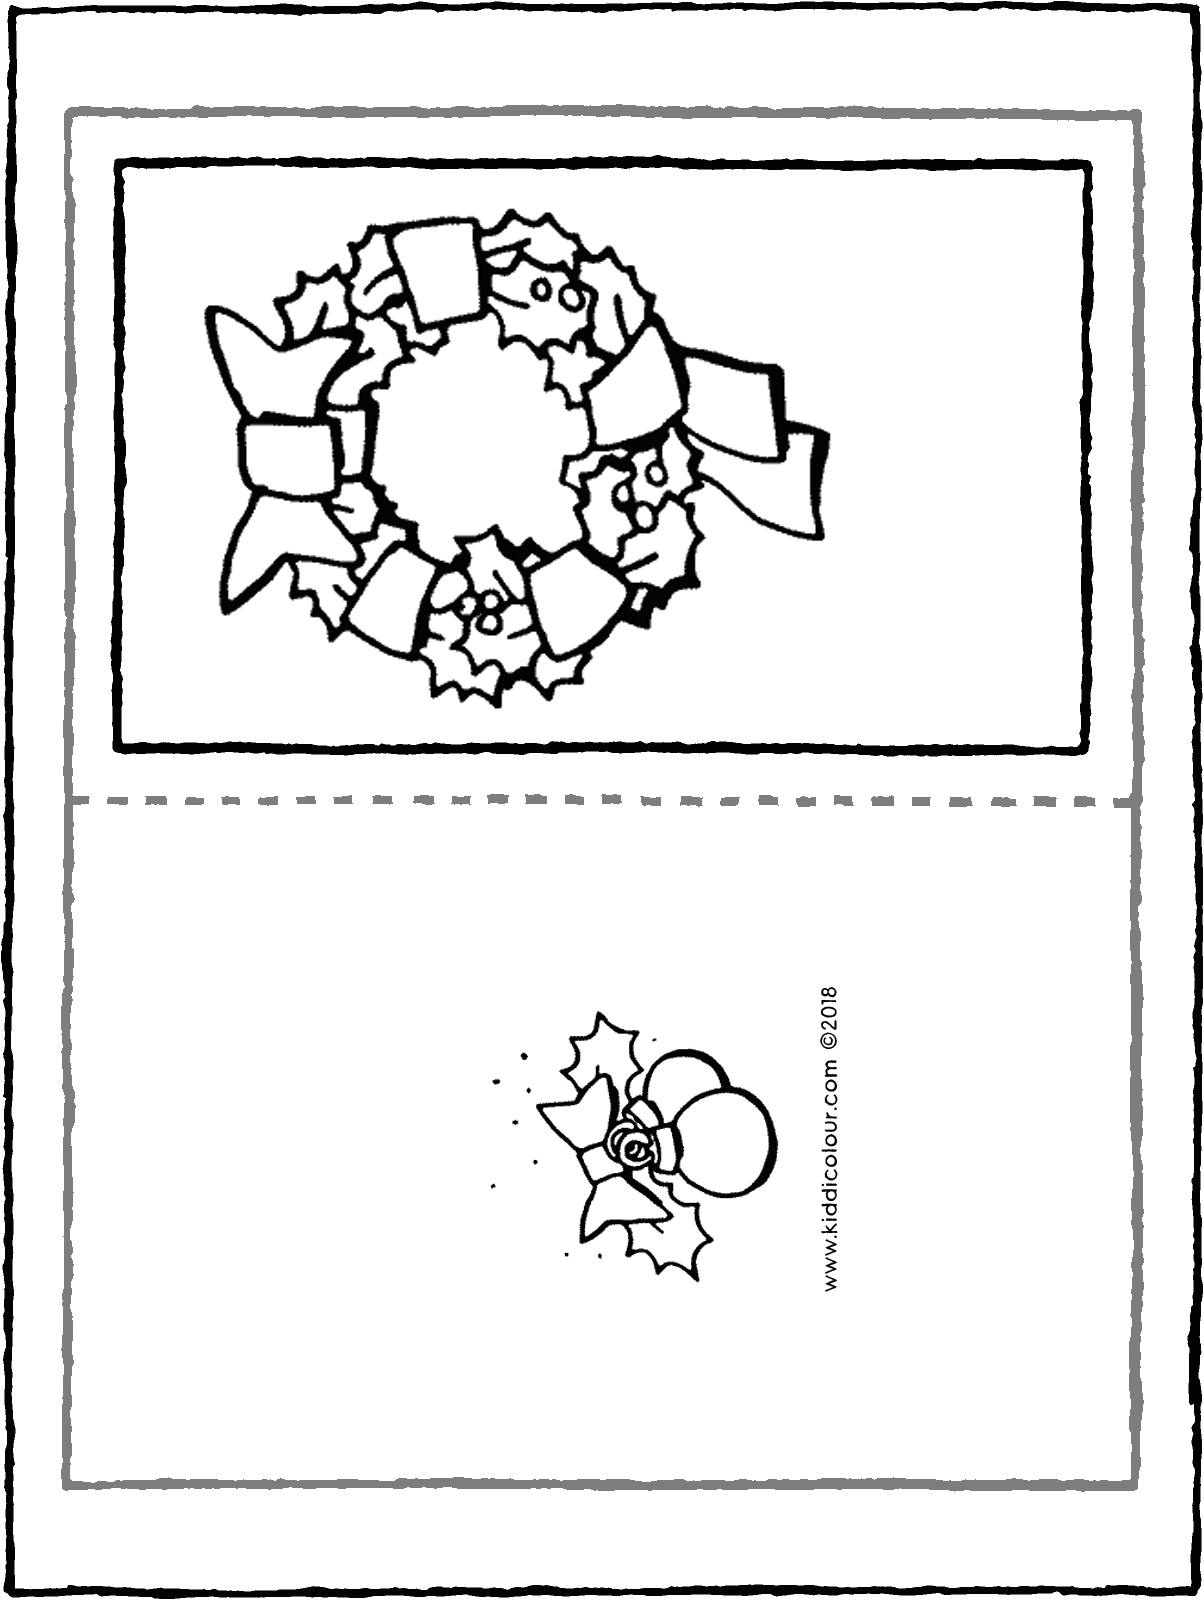 Christmas card with wreath colouring page drawing picture 01H